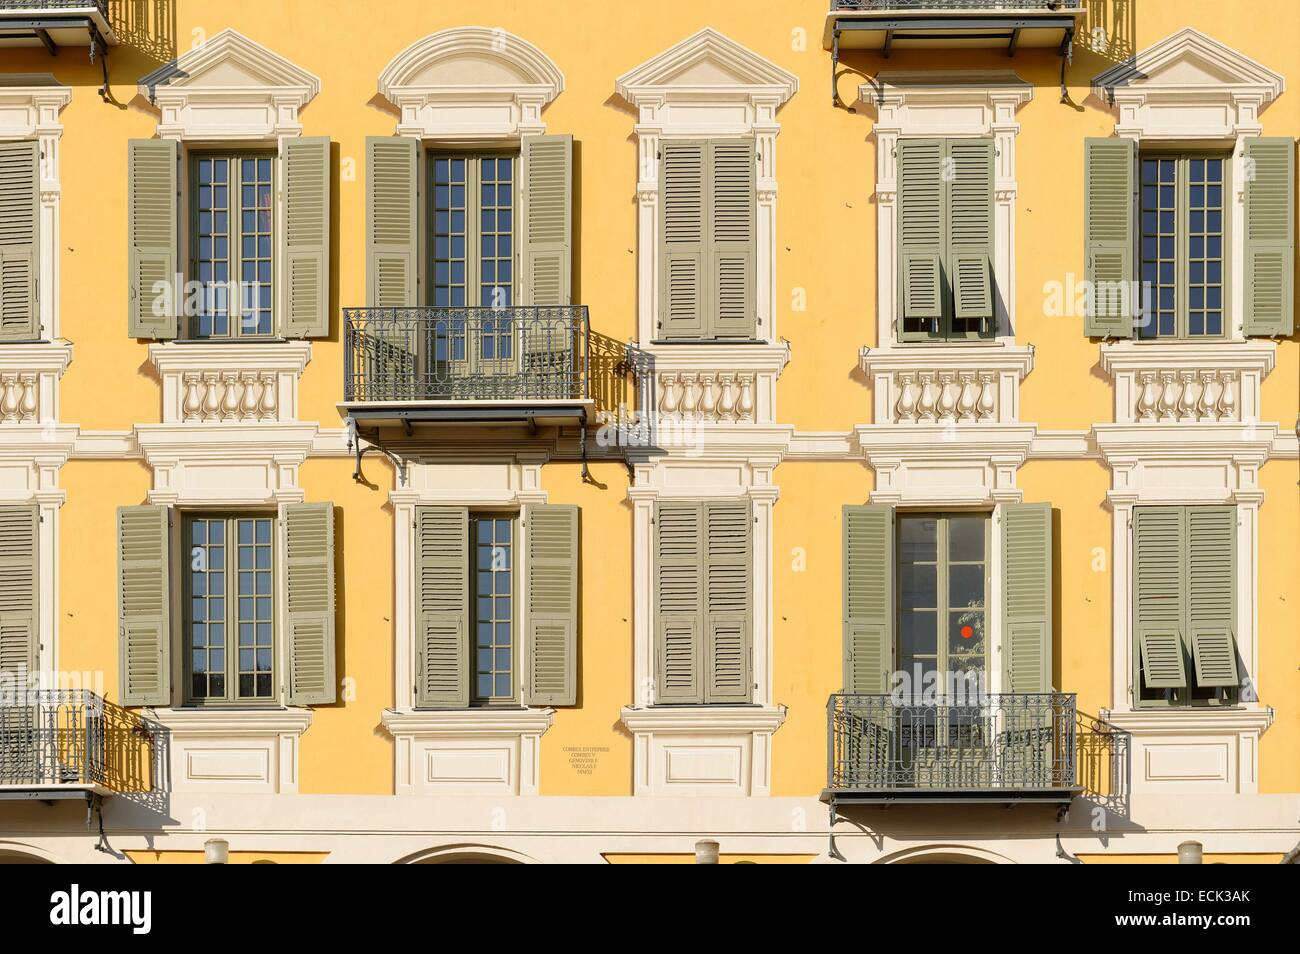 France, Alpes-Maritimes, Nice, place Garibaldi Stock Photo